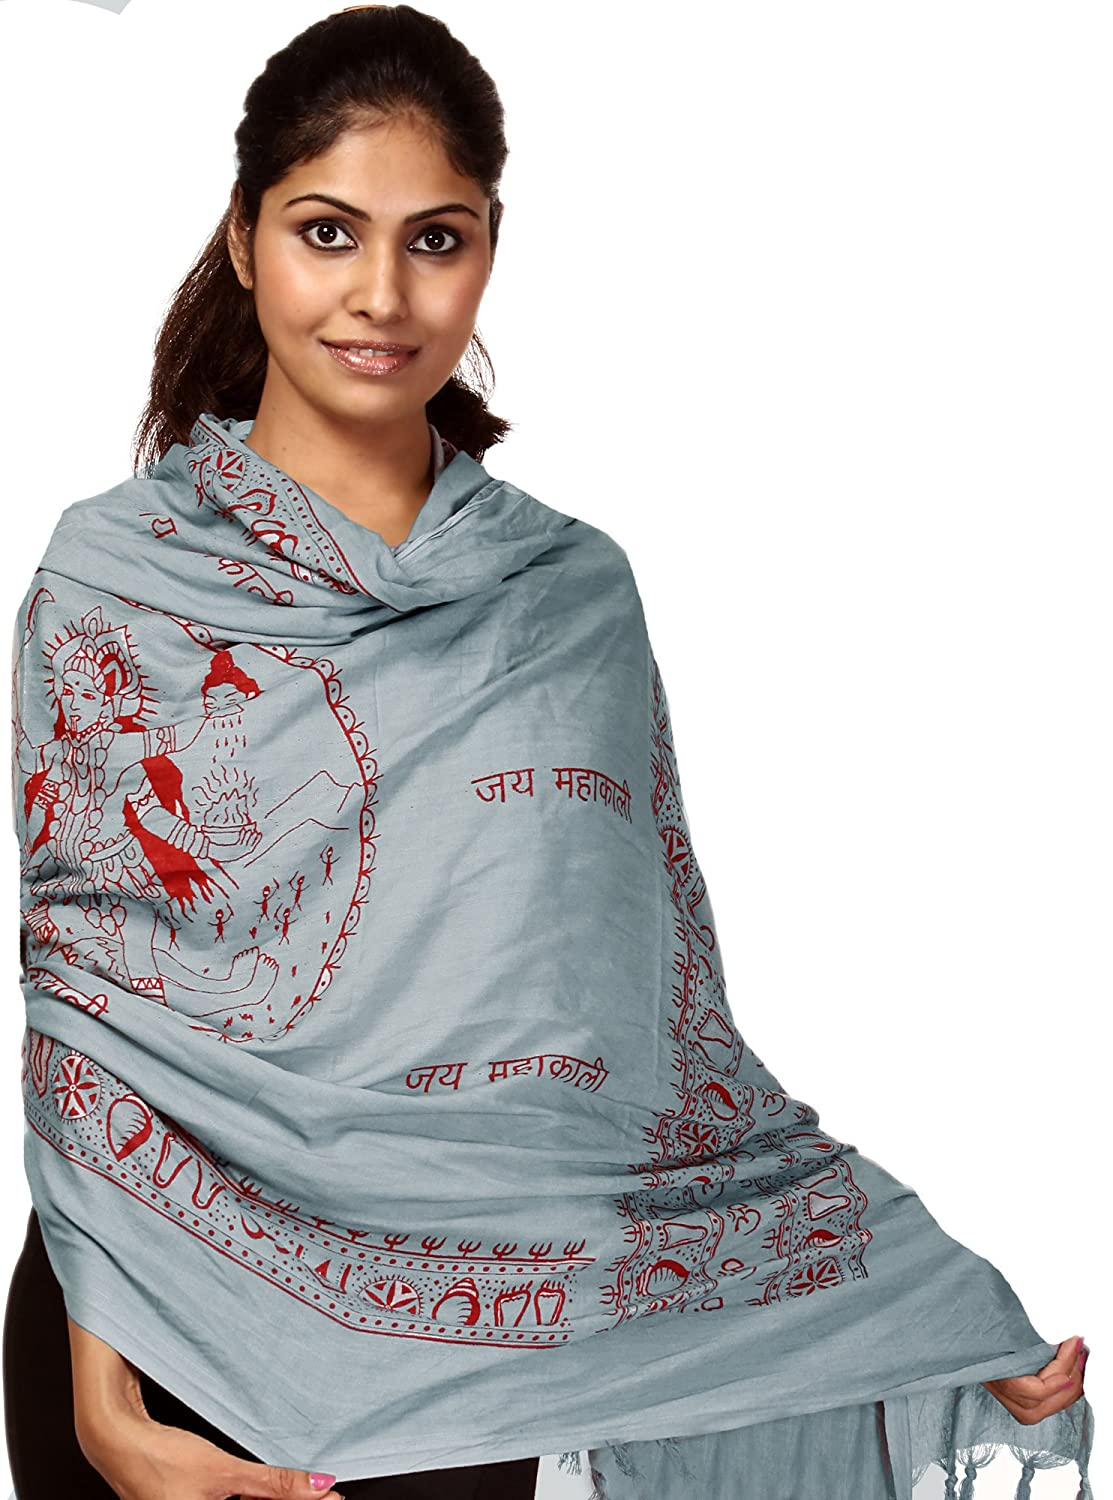 Exotic India Jai Maha Kali Prayer Shawl - White And Red SRB47